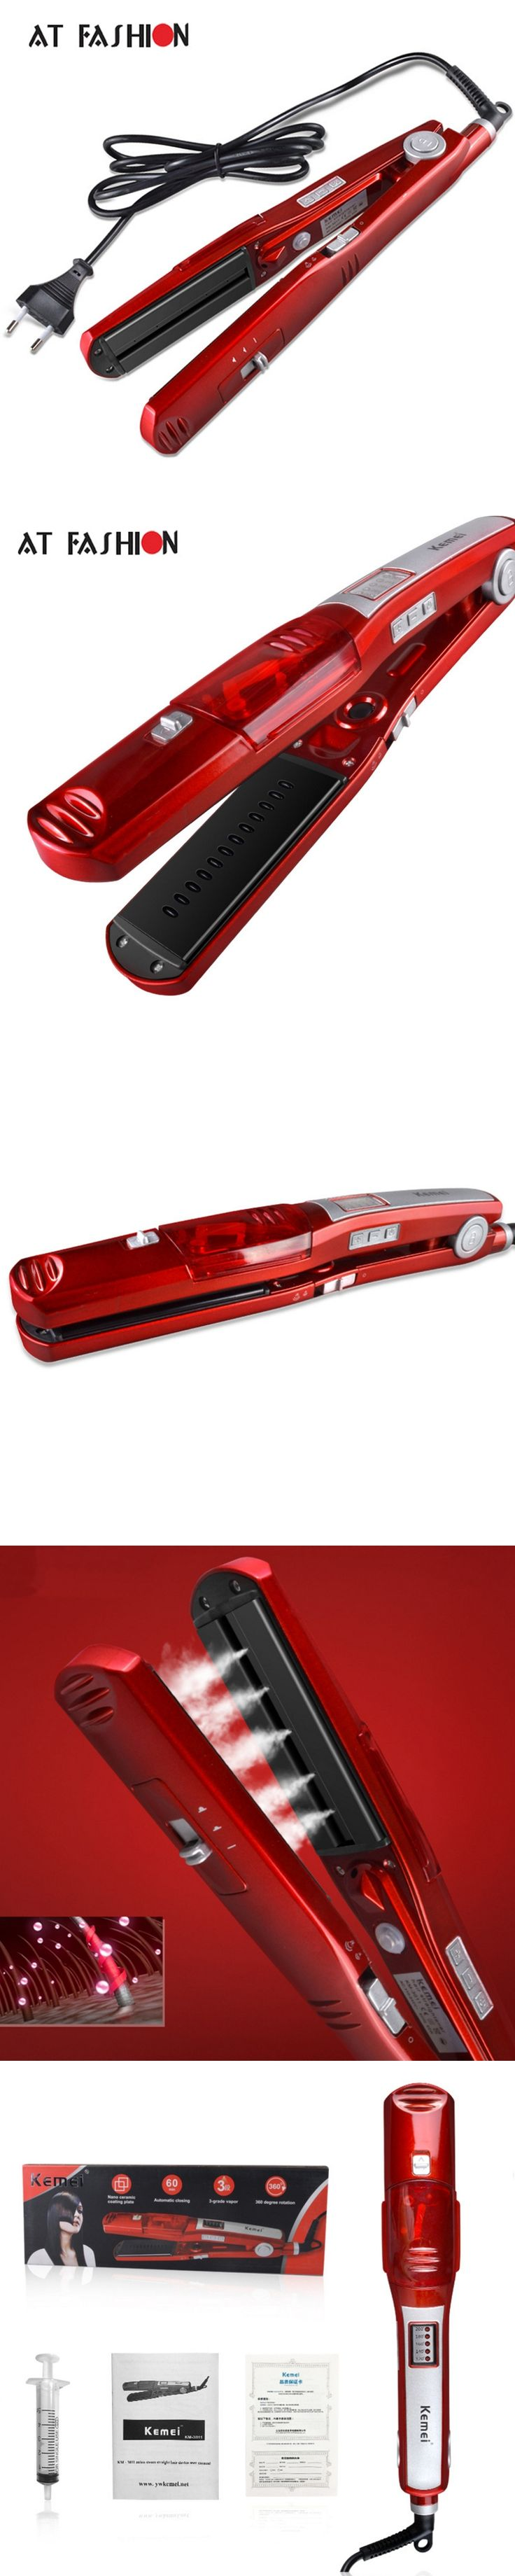 110-240V Steam Hair Straightener Professional Hair Styling Tools Ceramic Electric High Quality Flat Irons